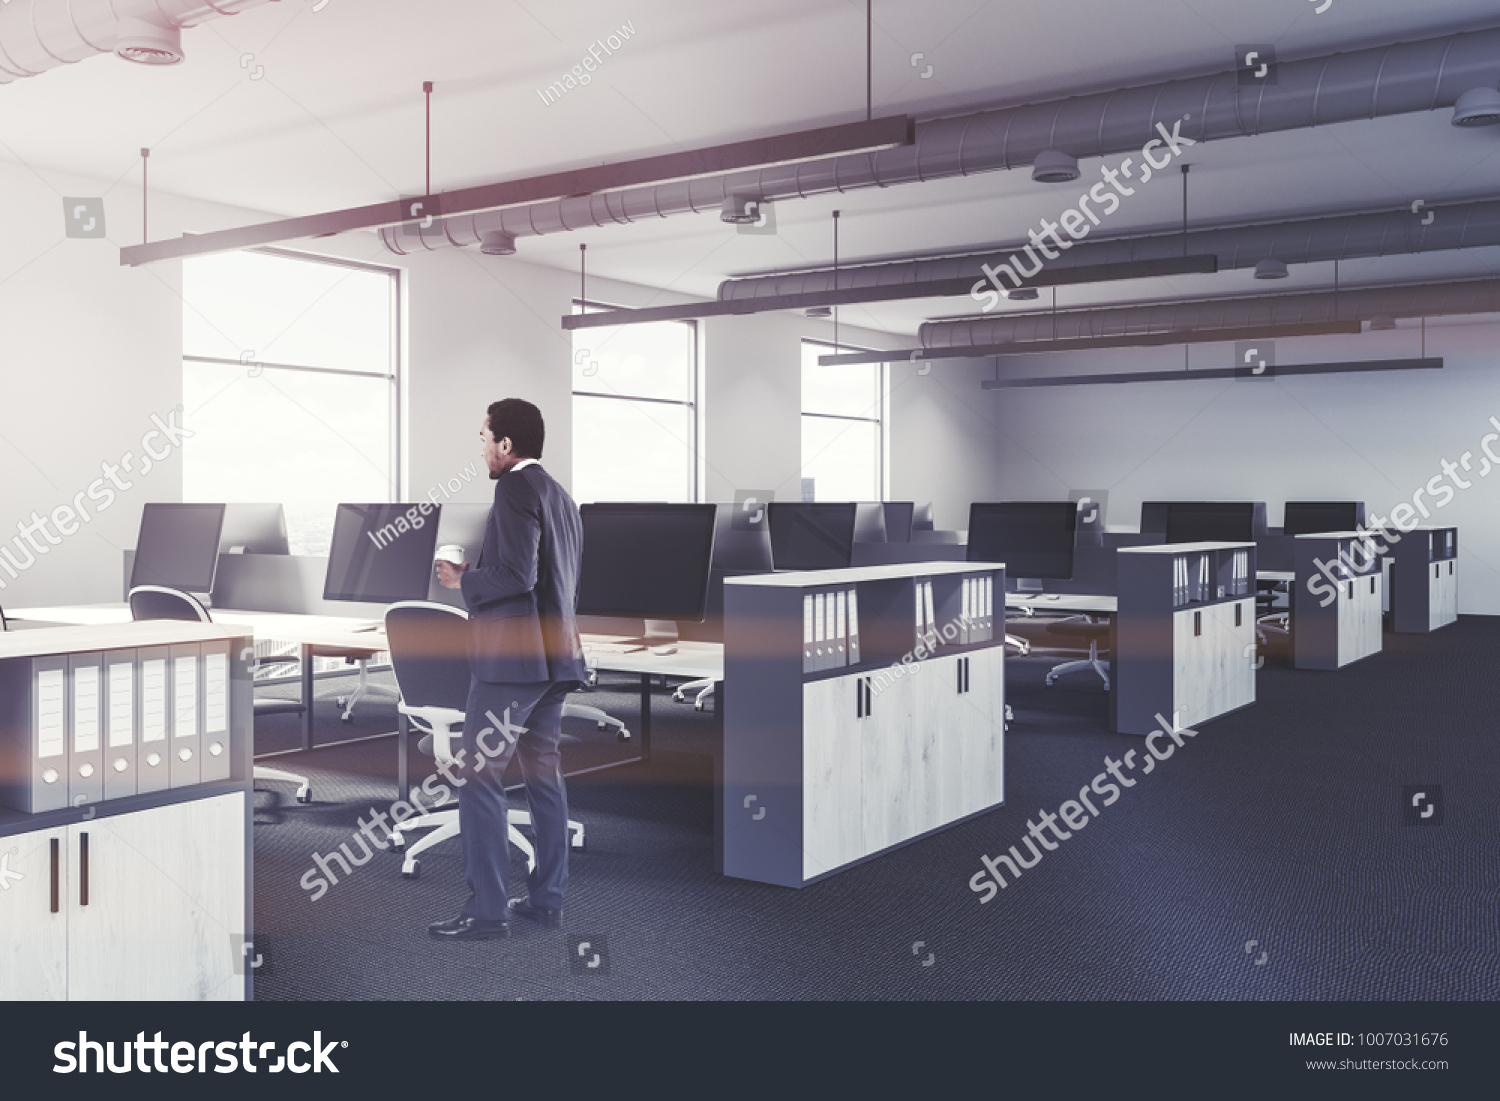 Modern office interior with white walls, large windows, white desks on office tables, office counters, office lamps, office bookcases, office stools, office kitchen, office furniture, office beds, office lobby, office footrest, office reception, office desks, office accessories, office trash can, office employees, office sofa sets, office computers, office couch, office pens, office cubicles,